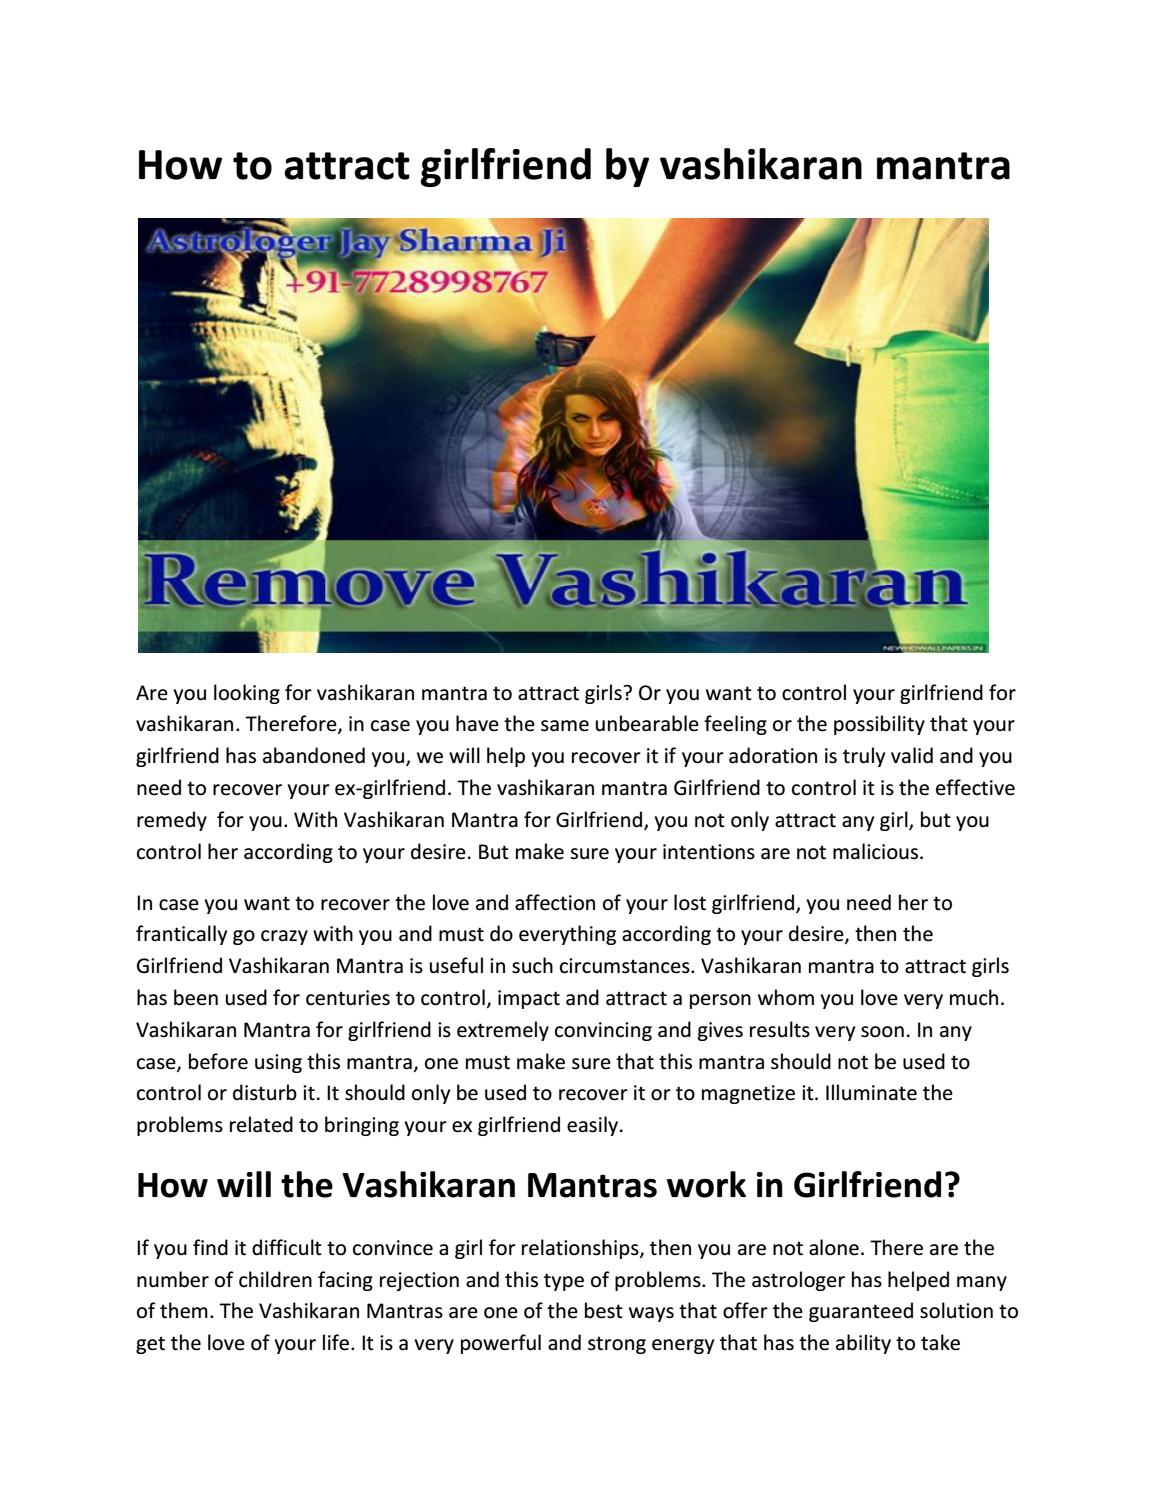 How to attract girlfriend by vashikaran mantra by Jay Gour